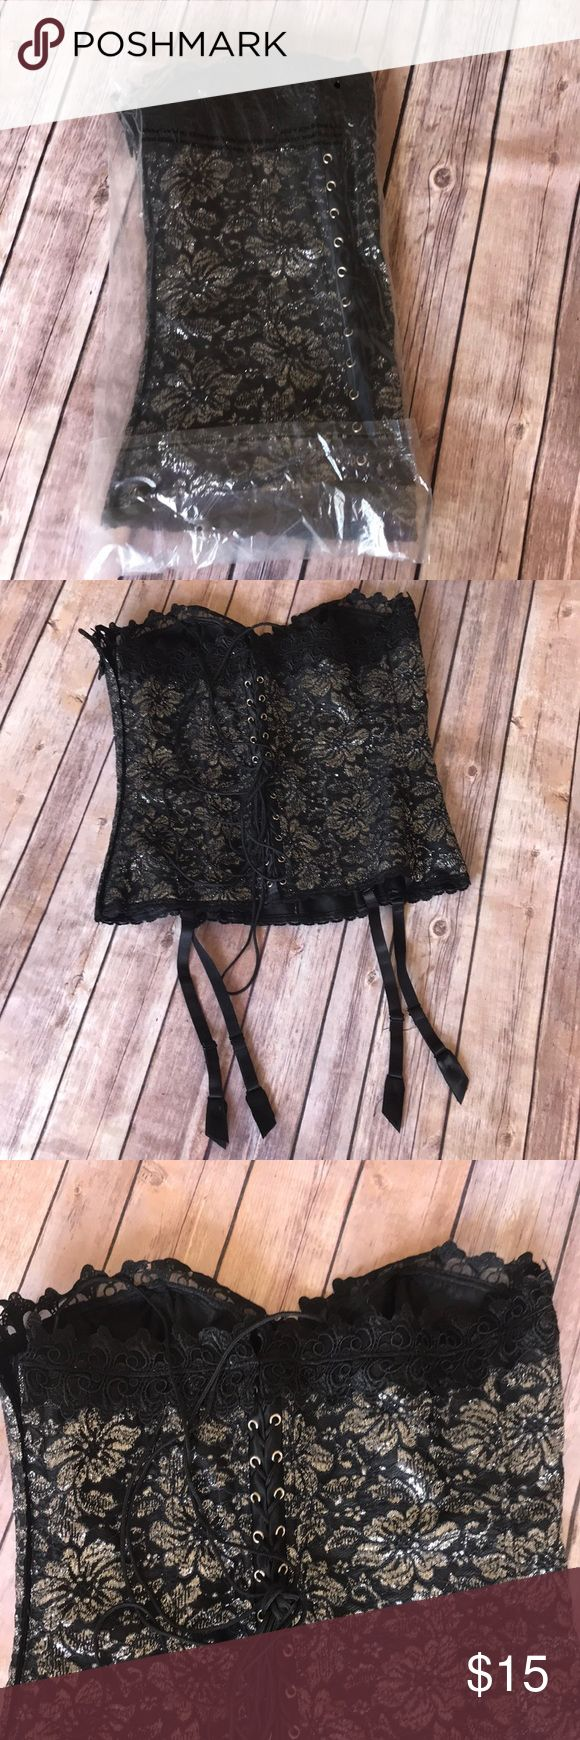 {Frederick's} Black & Silver Corset Bra Size 38 NWOT. This was only ever removed from the bag for pictures.  •Black and Metallic Silver Strapless corset •Lace-Up Back •Detatchable Hoisery Straps •Size 38 Frederick's of Hollywood Intimates & Sleepwear Bras